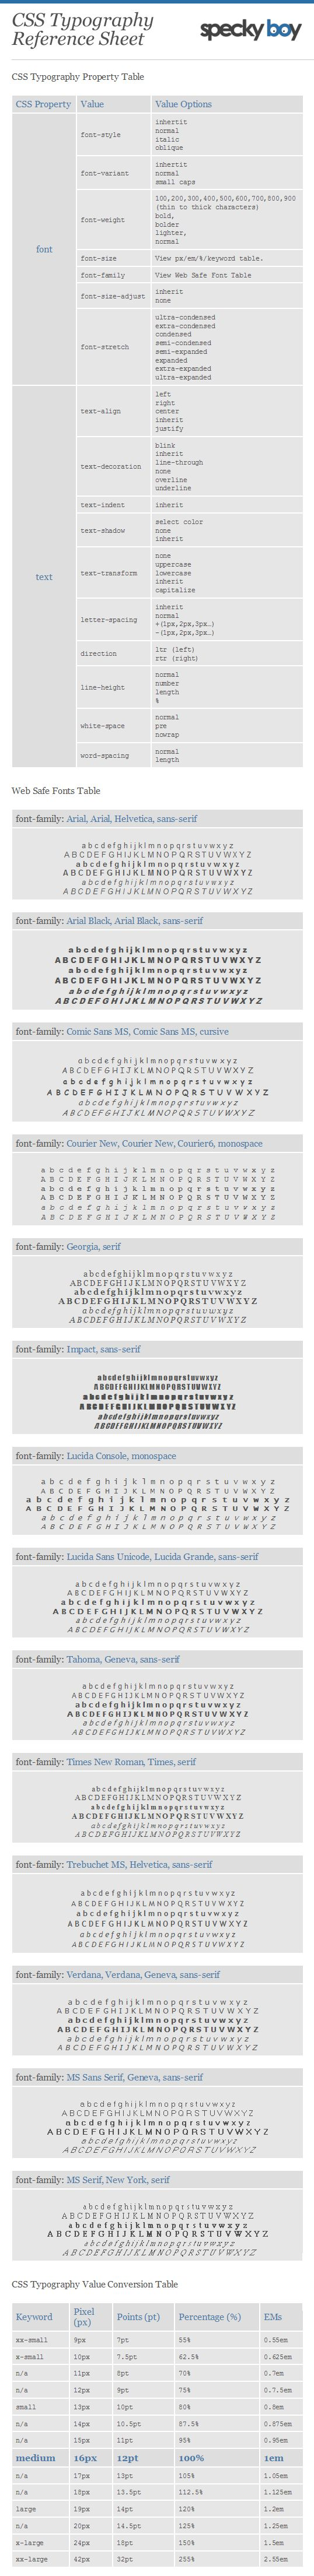 CSS Typography Cheat Sheet by SpeckyBoy